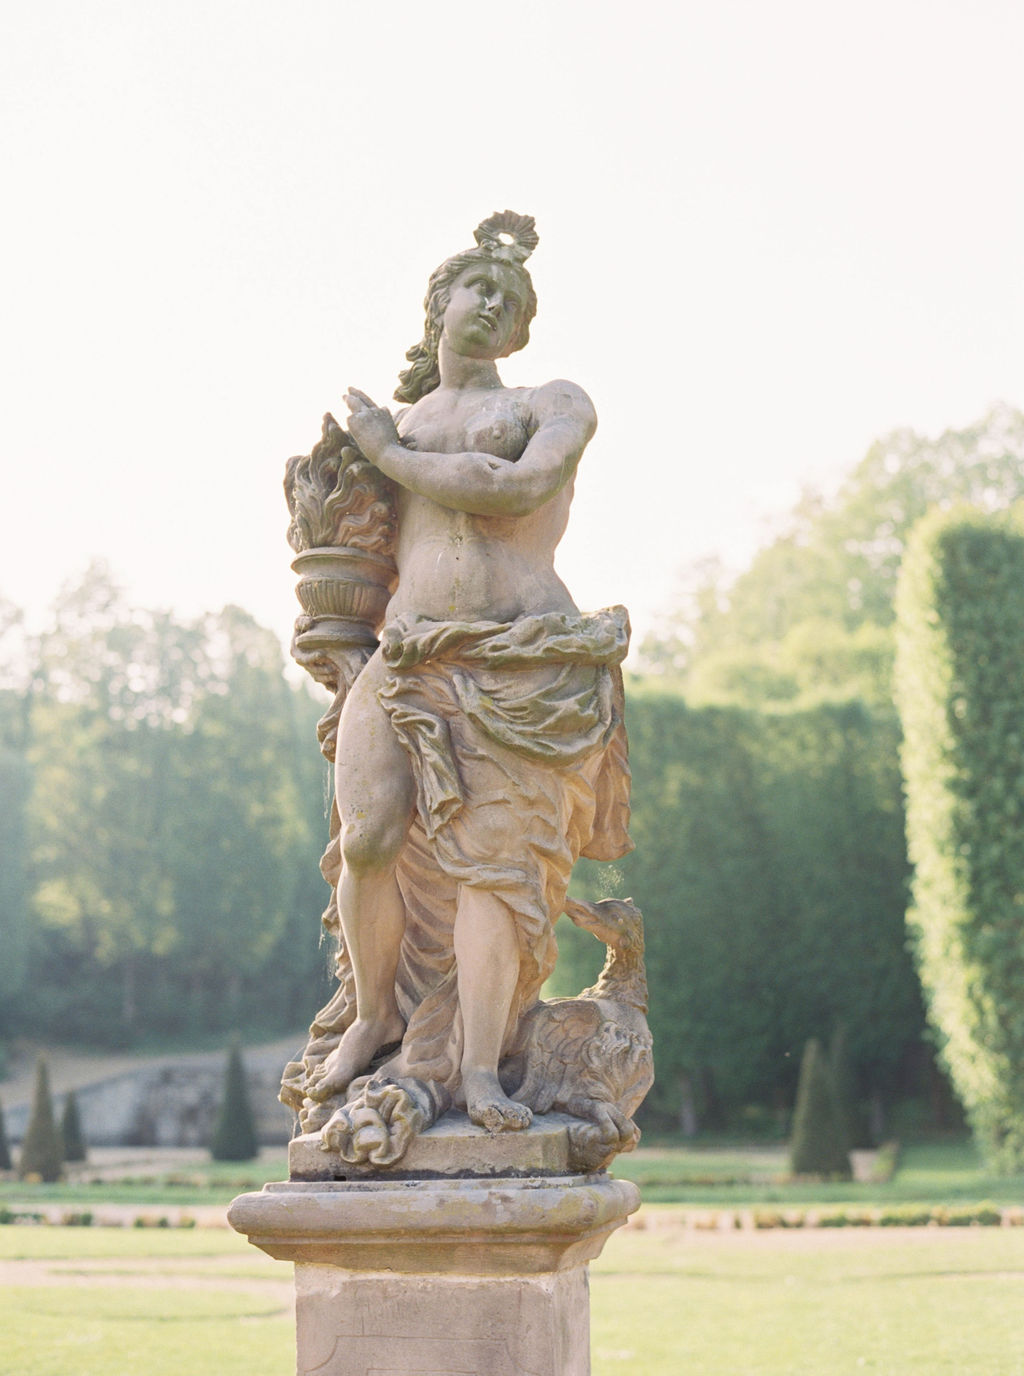 travellur_photoshoot_duchesse_de_villette_chateau_gardens_statue_france.jpg